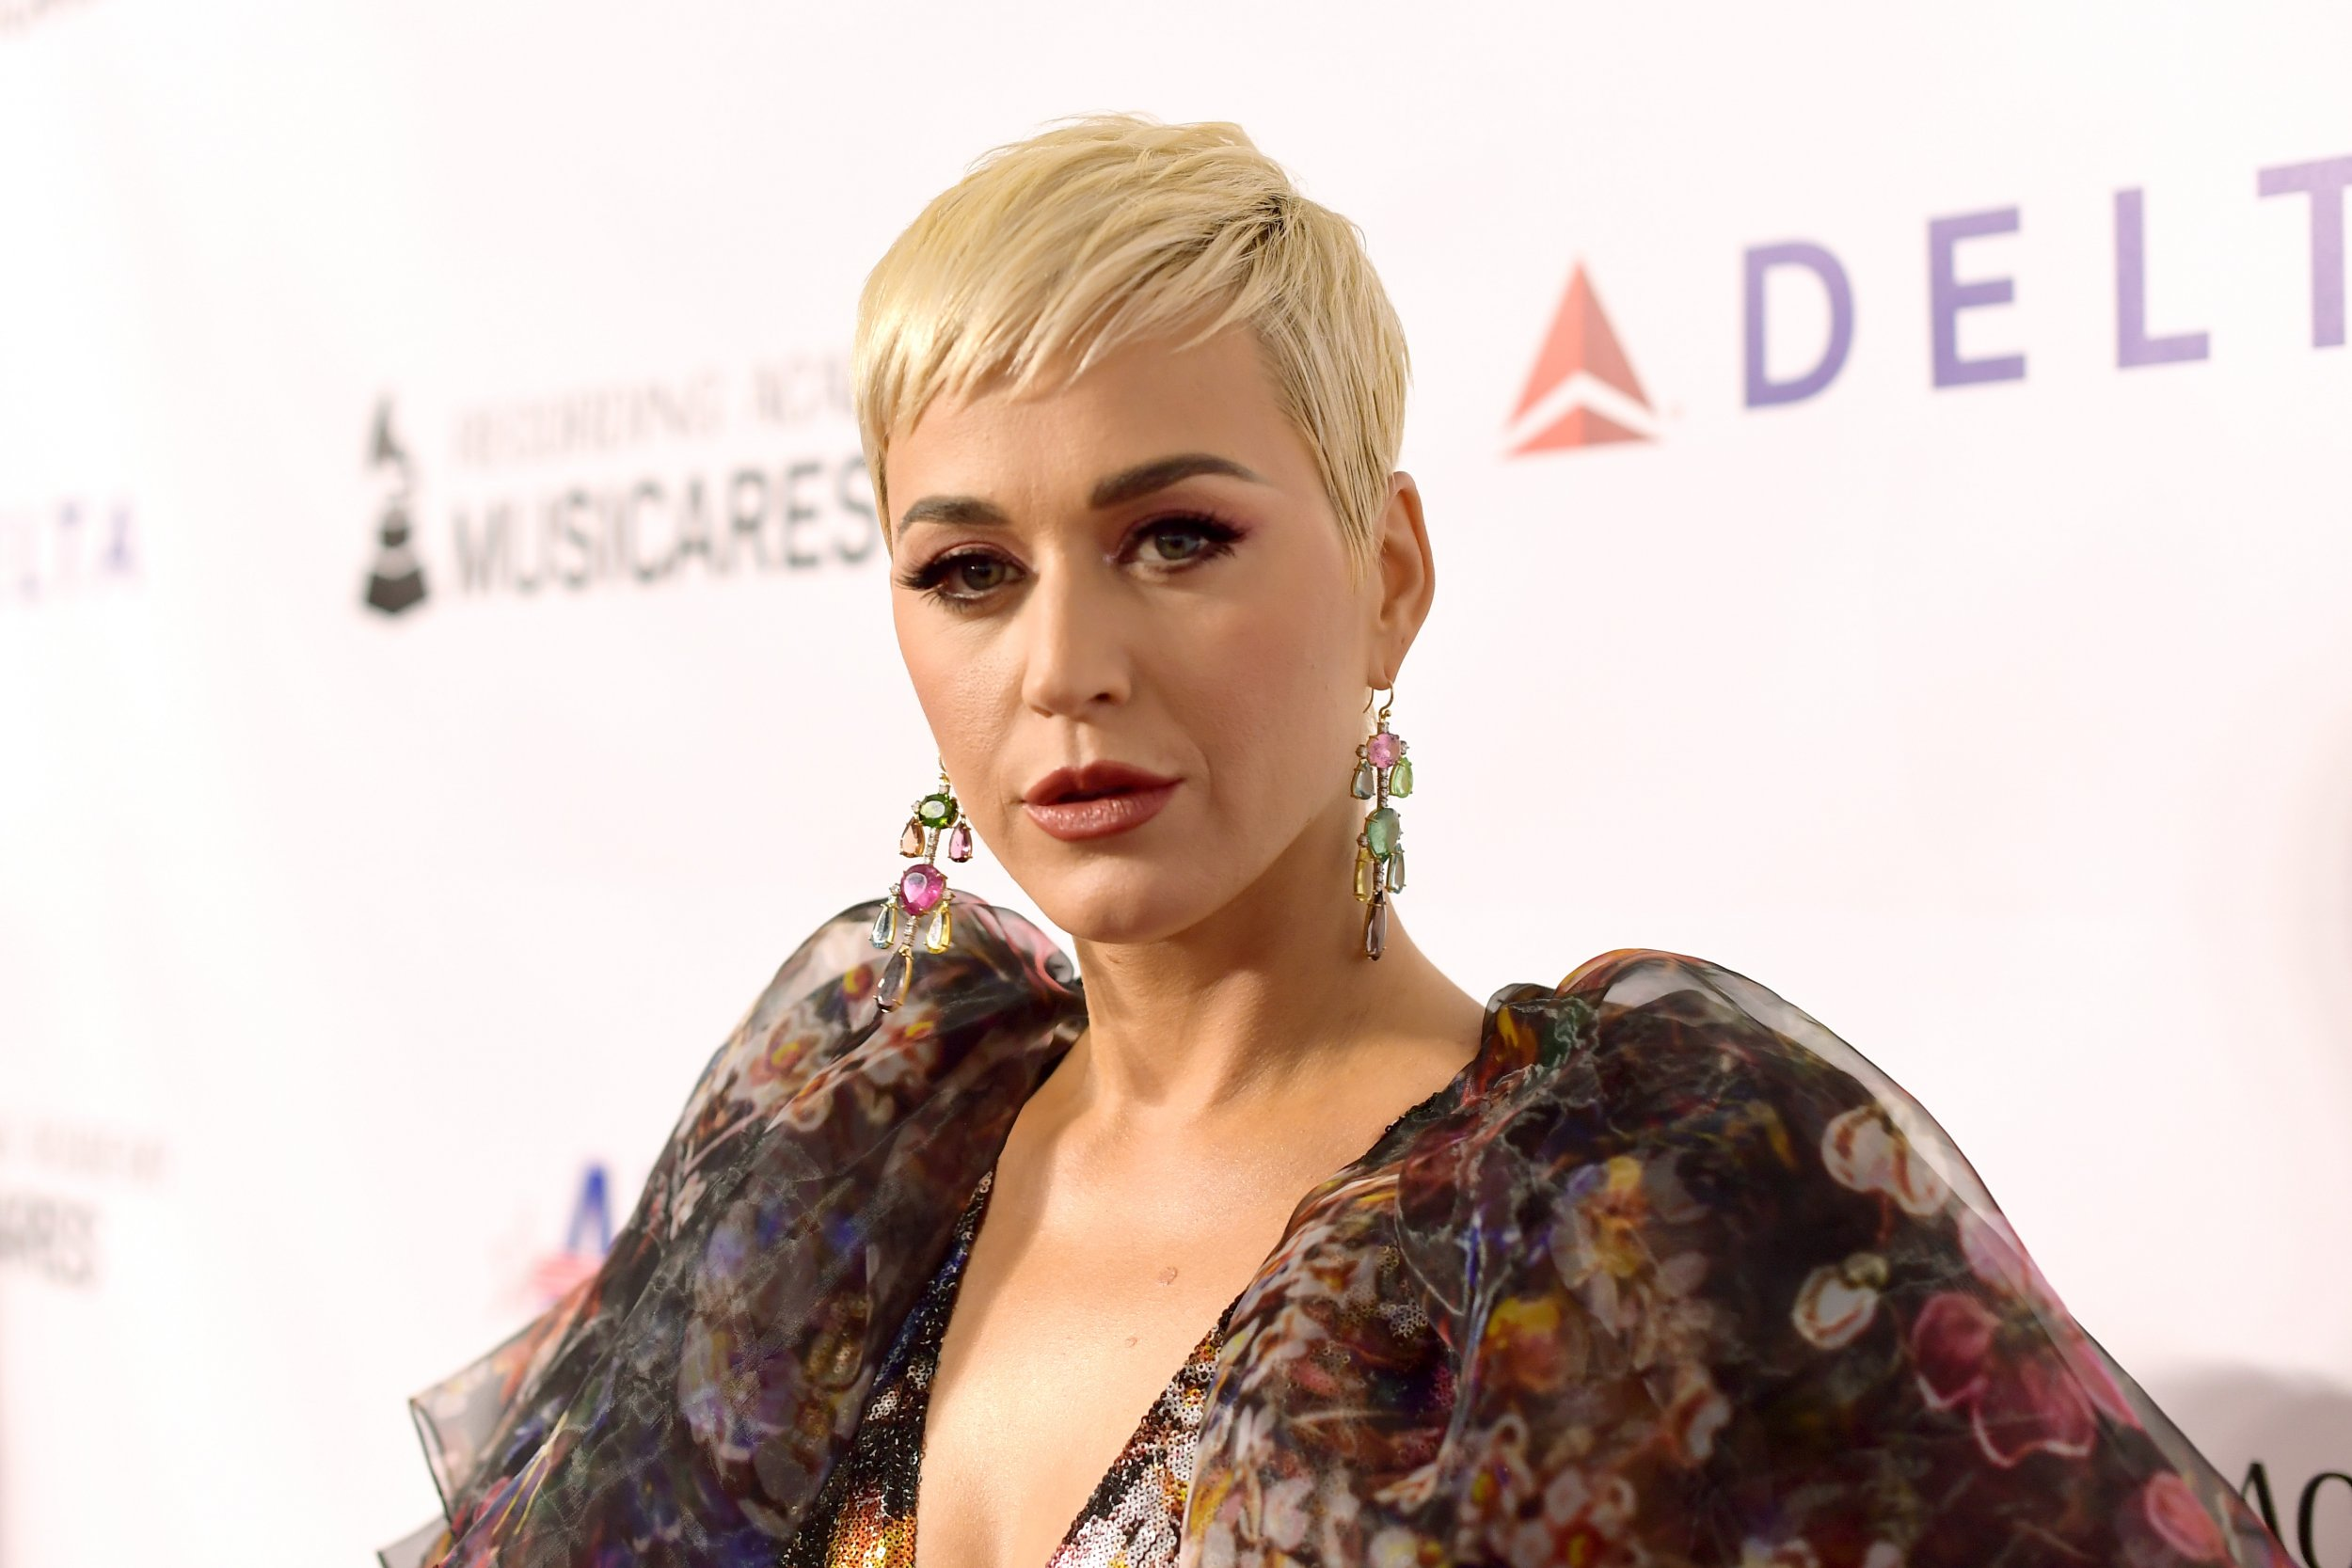 Katy Perry Net Worth Amid Orlando Bloom Engagement